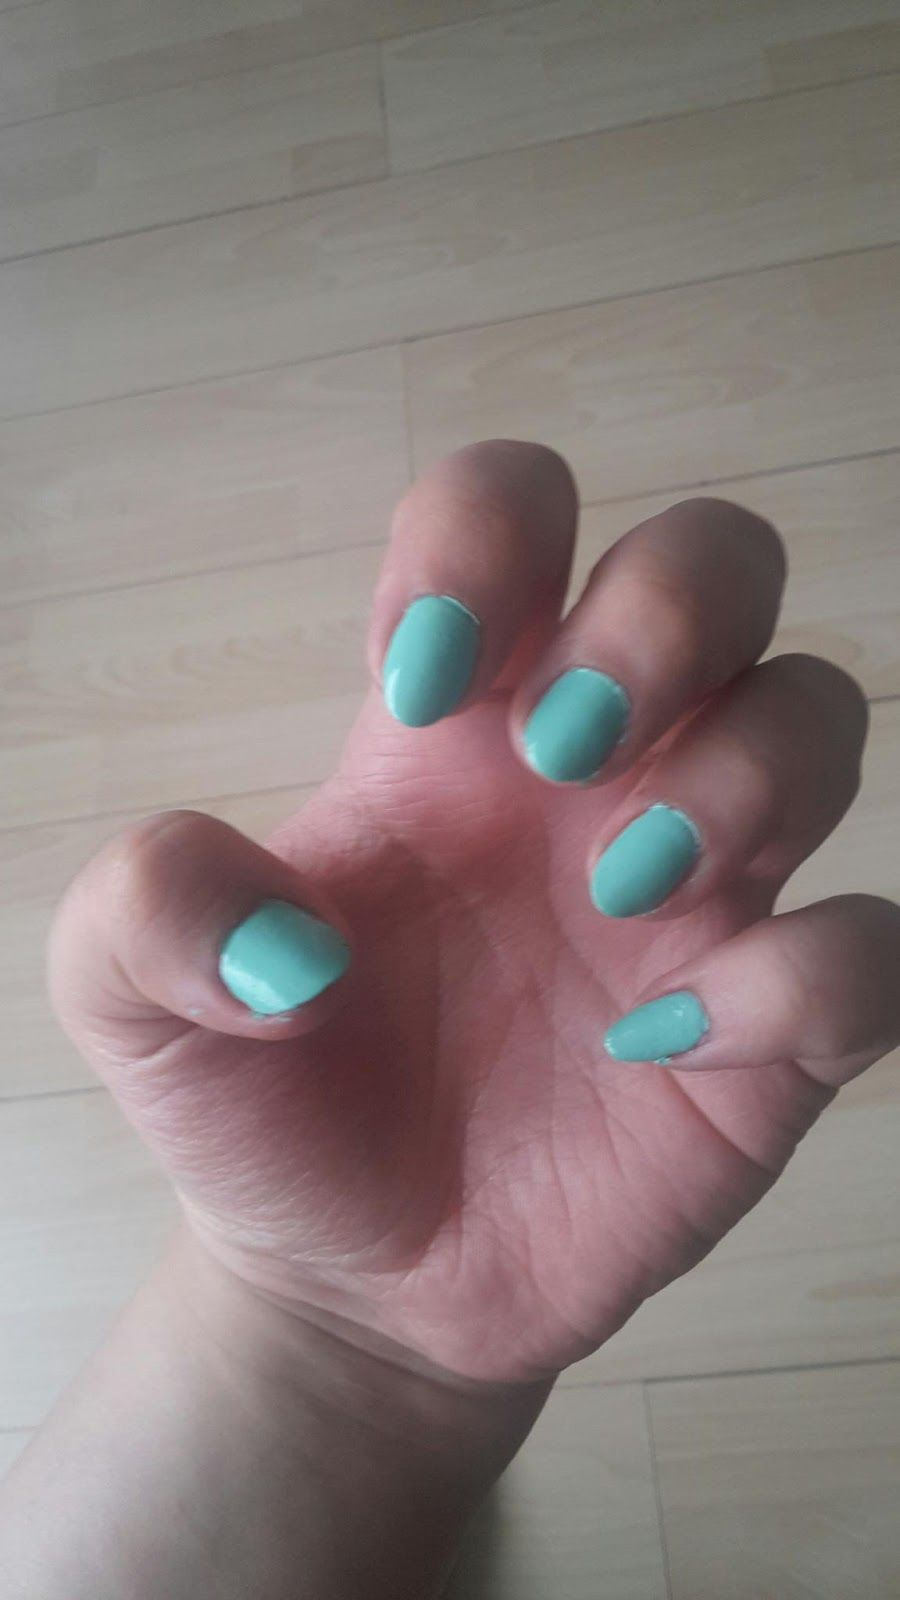 Bloggerwithsmile : 1 Woche - 3 Nagellacke